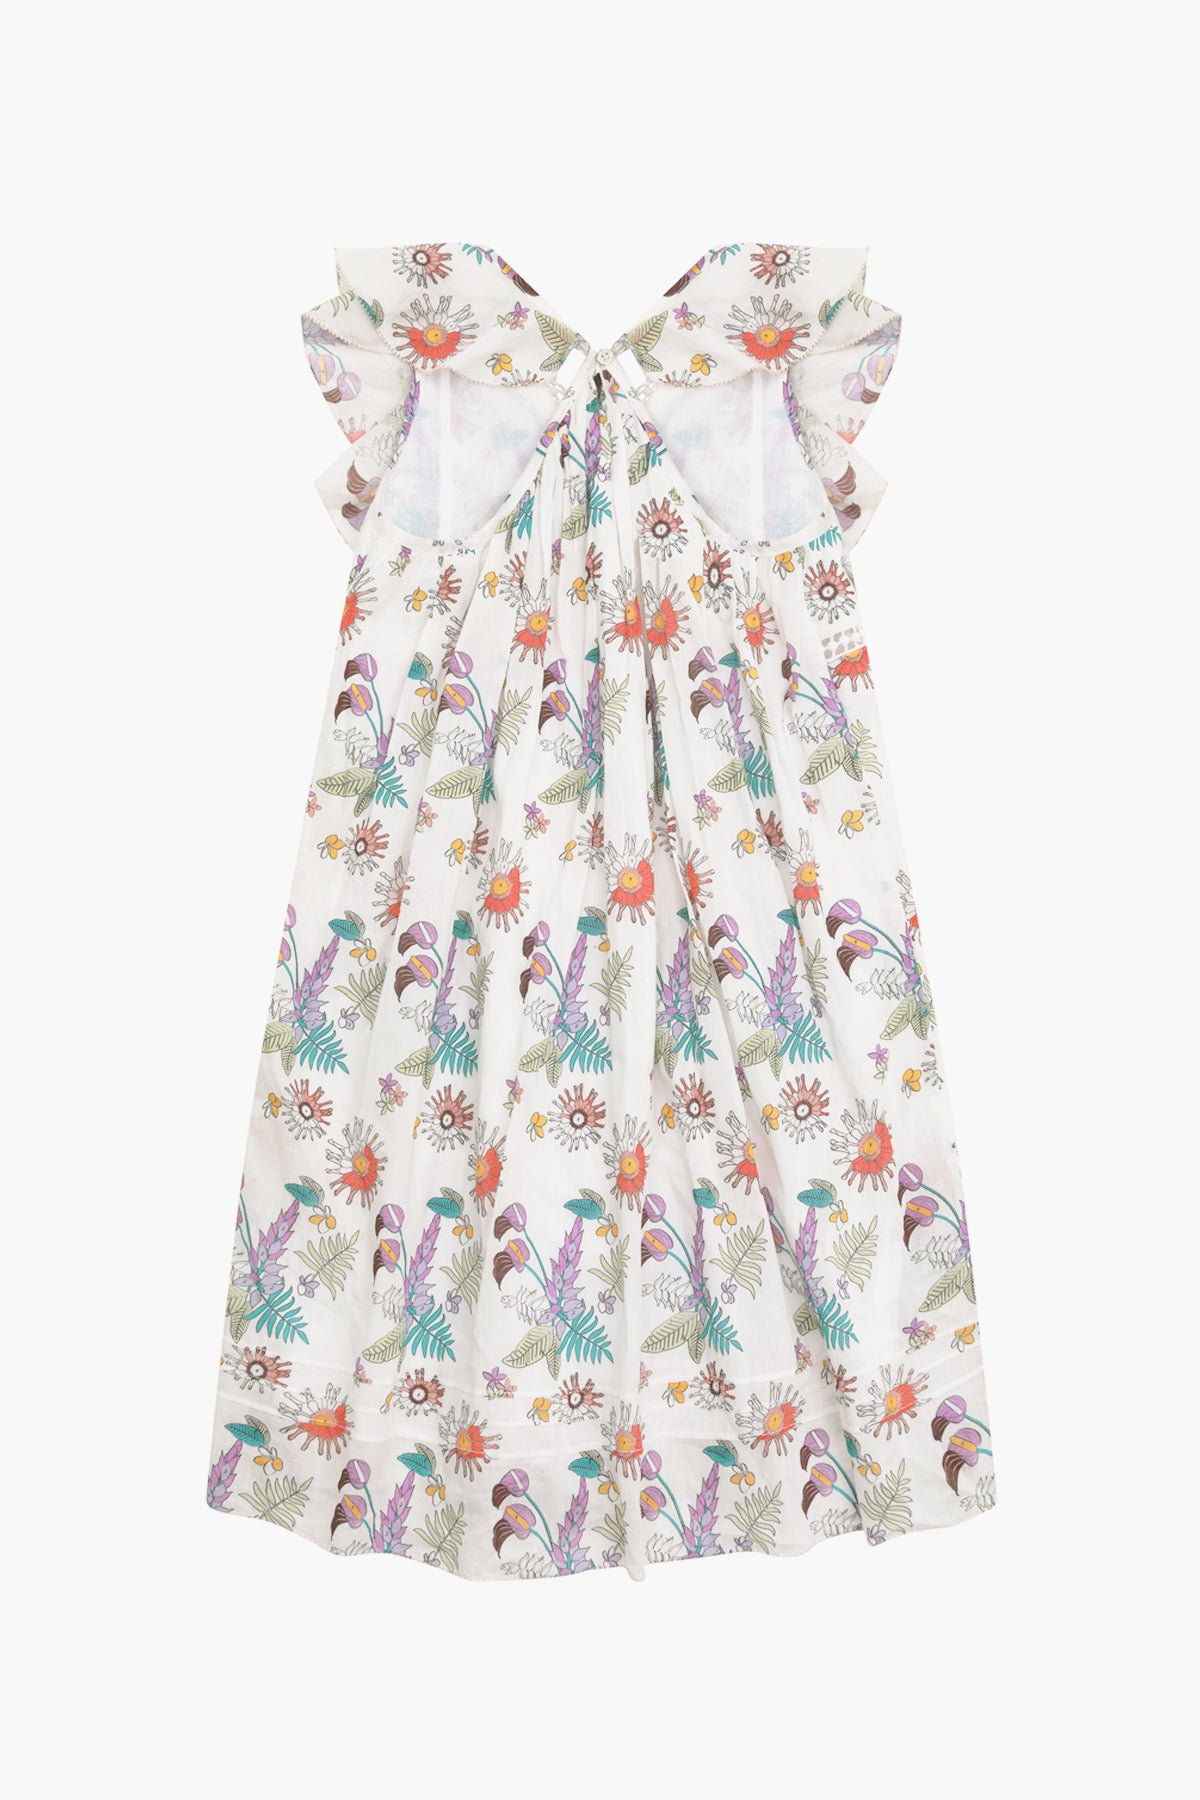 Velveteen Abigail Girls Dress - Paint By Numbers